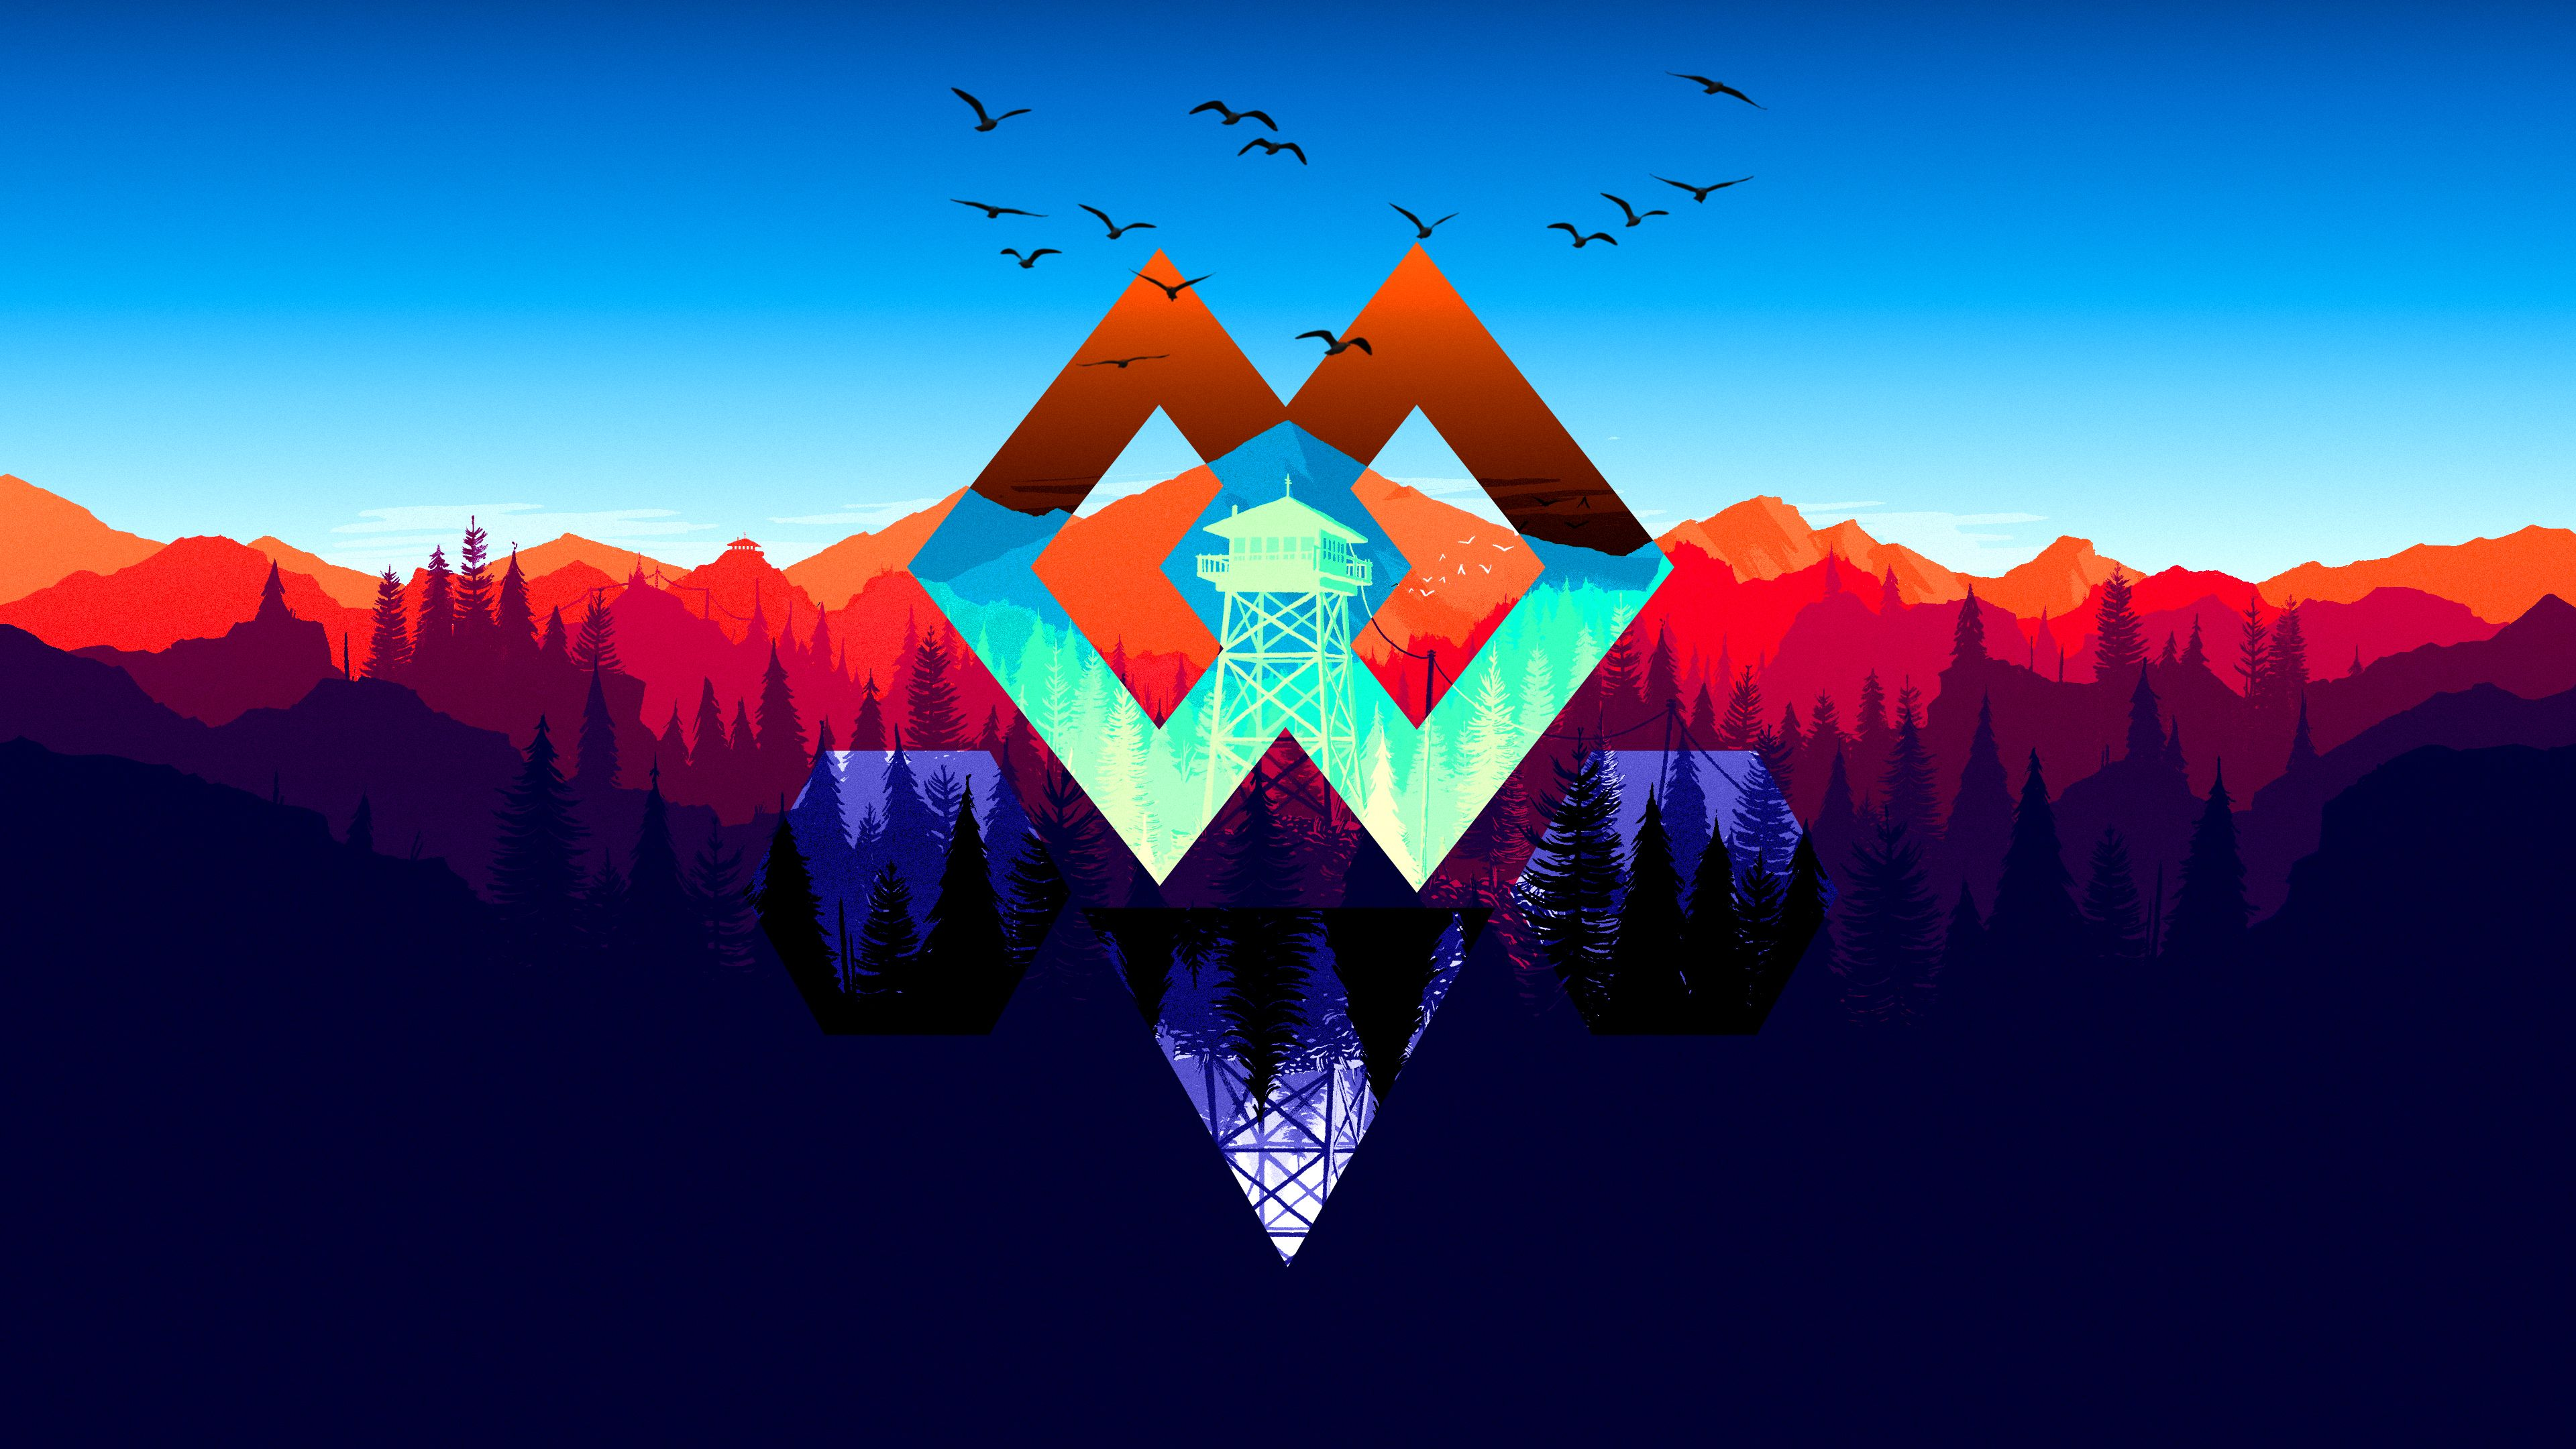 50 Firewatch Hd Wallpapers   Abstract Gaming Background 4k 3840x2160